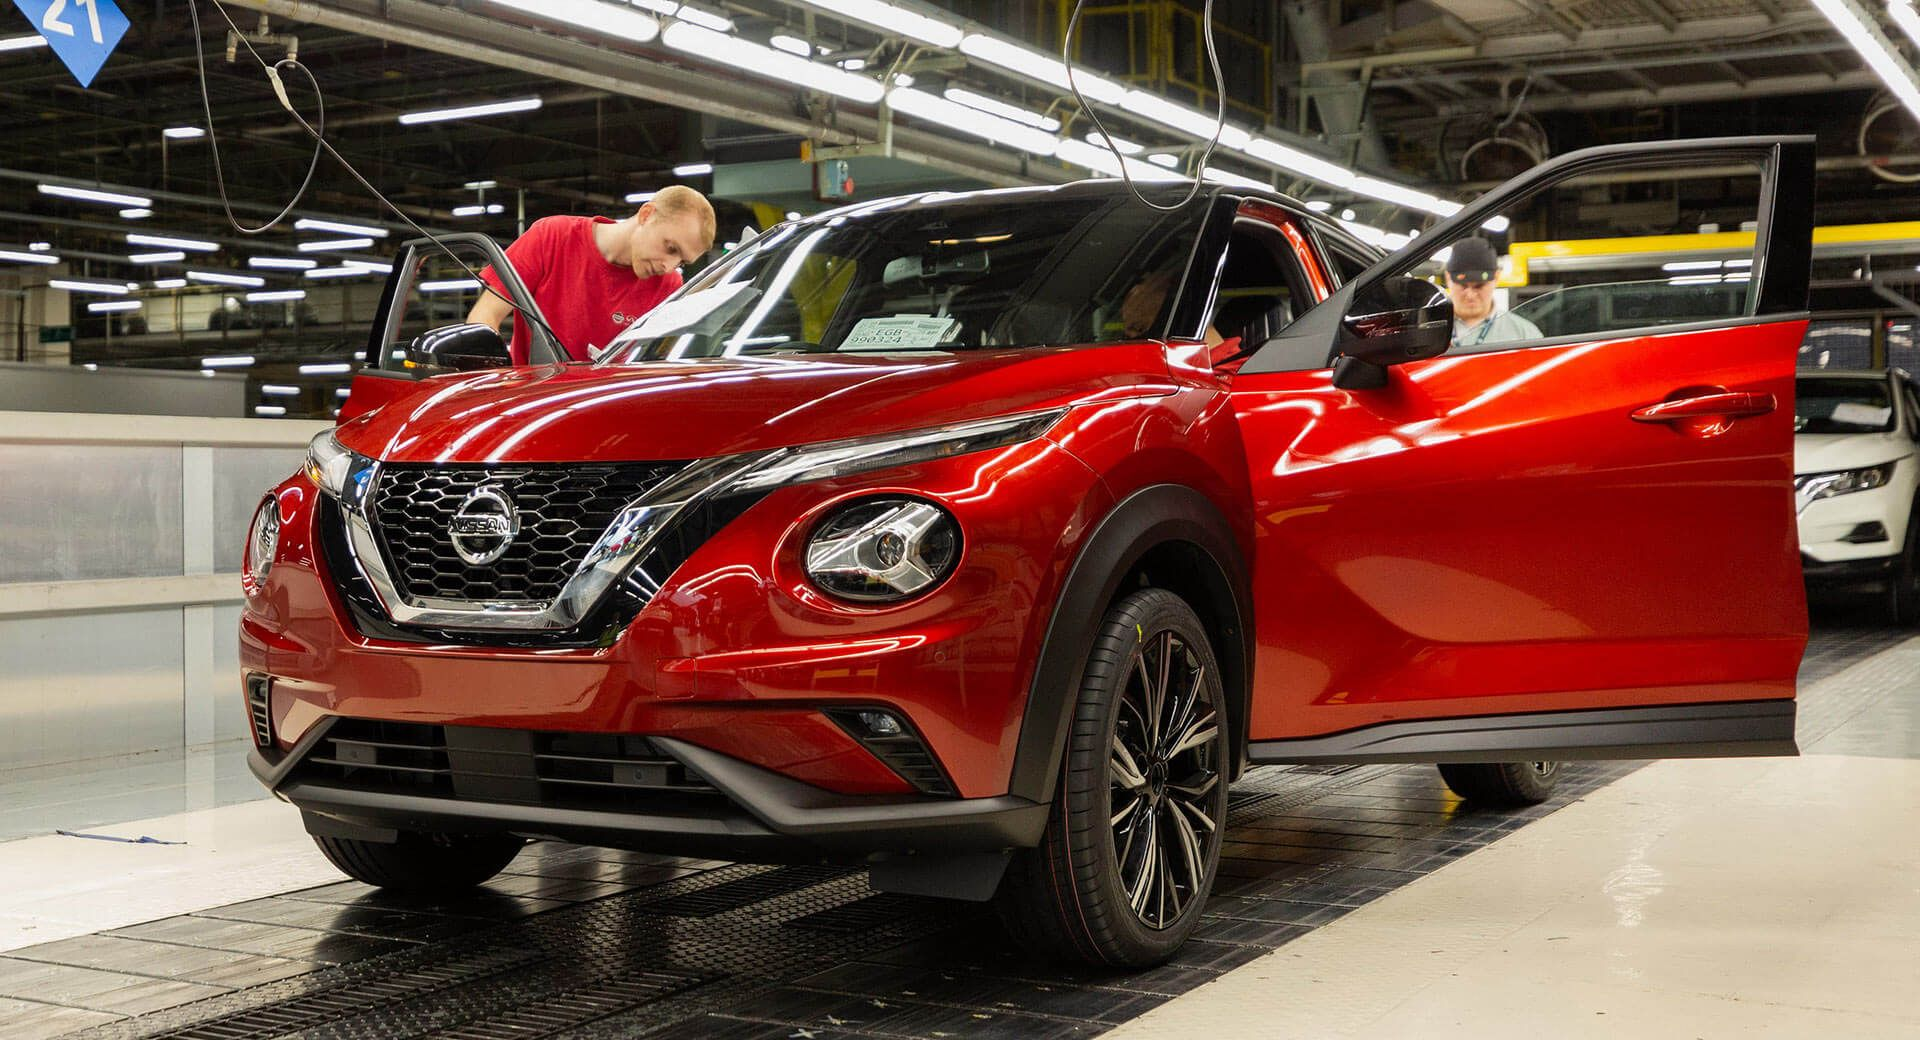 2020 Nissan Juke Goes Into Production At Sunderland Plant Nissan Nissanjuke Uk Cars Carsofinstagram Carporn Carlifestyle Car Nissan Nissan Juke Renault